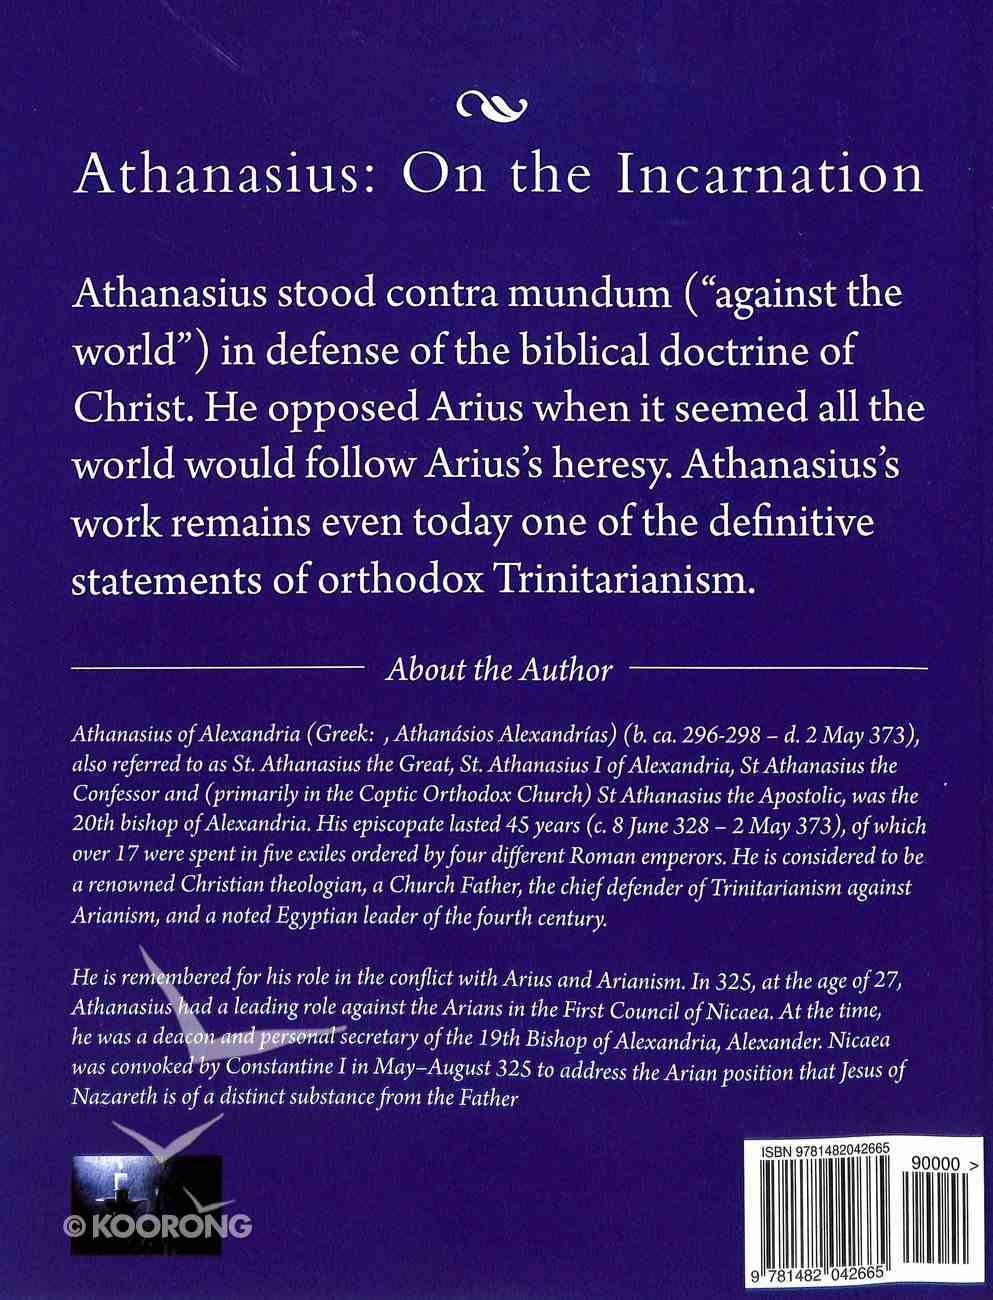 Athanasius: On the Incarnation Paperback